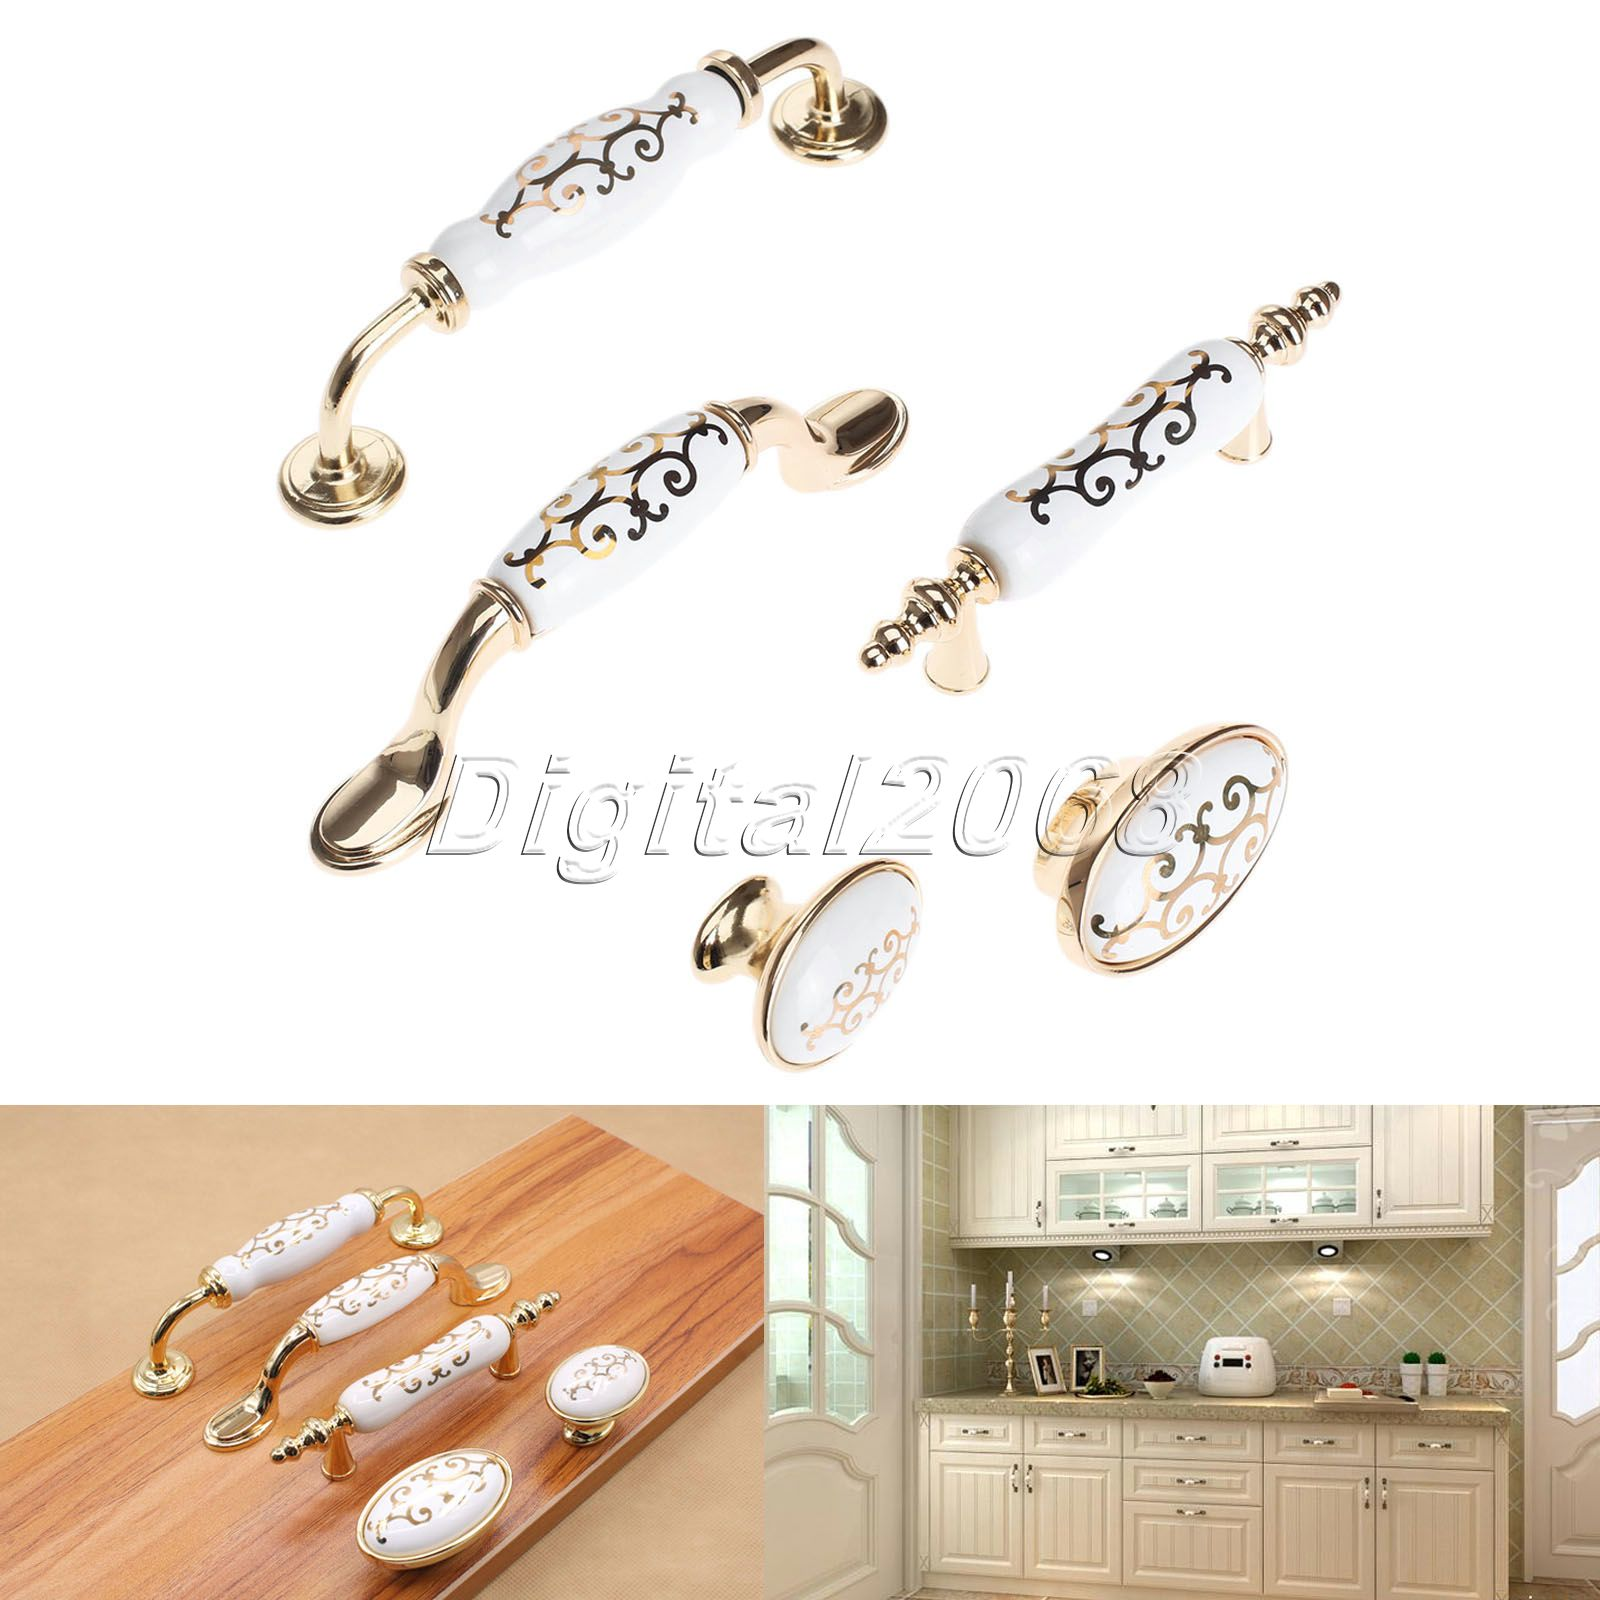 White Drawer Pull Knob Kitchen Cabinet Door Handles For Cabinet Wardrobe Cupboard Closet Drawer Furniture Hardware Accessories(China (Mainland))